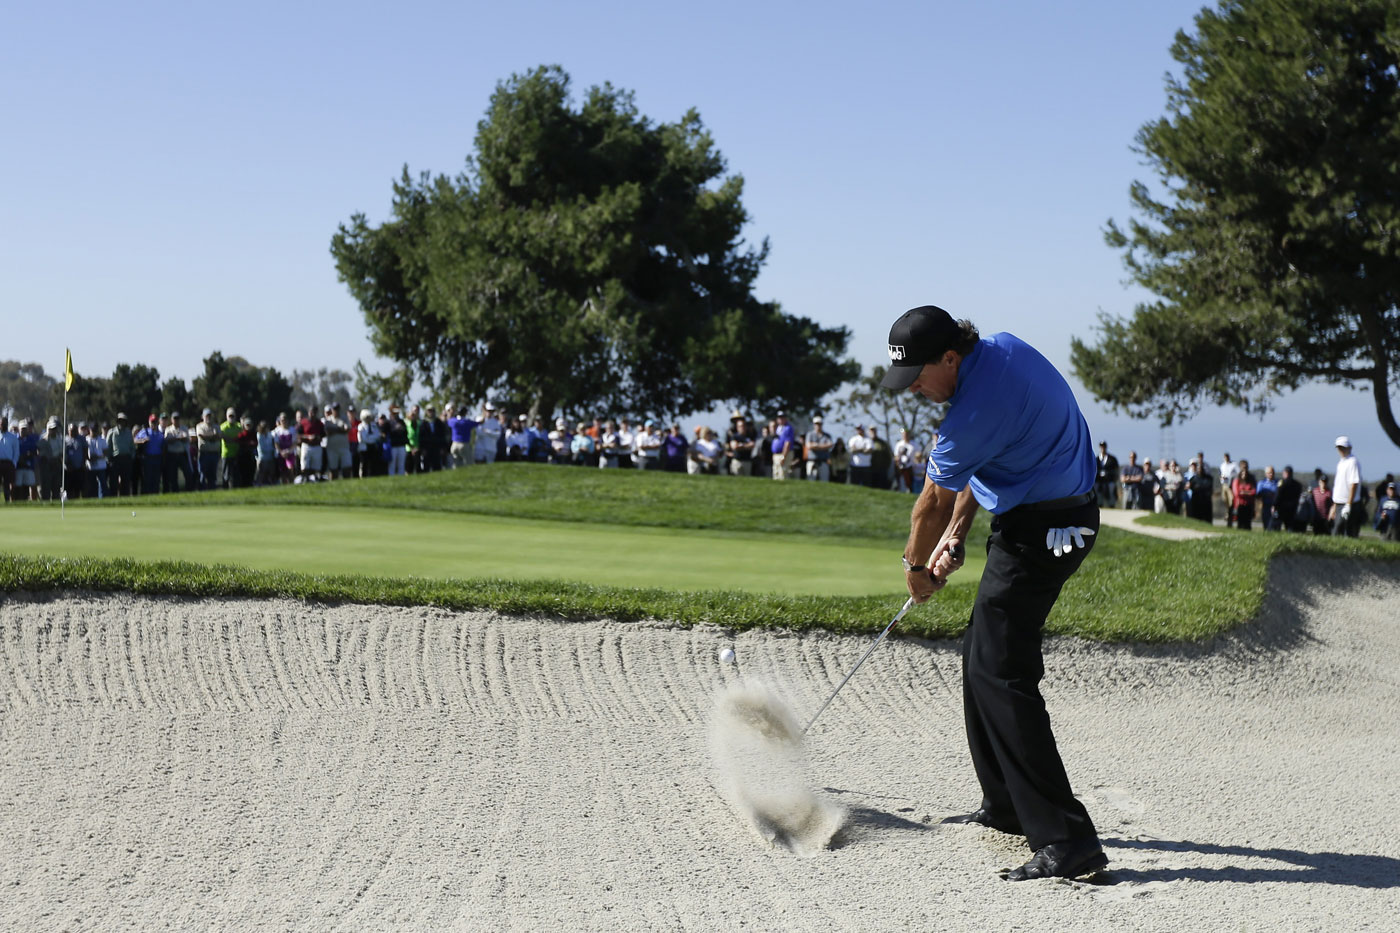 Phil Mickelson missed the cut after shooting 74-72. It was his second consecutive MC.